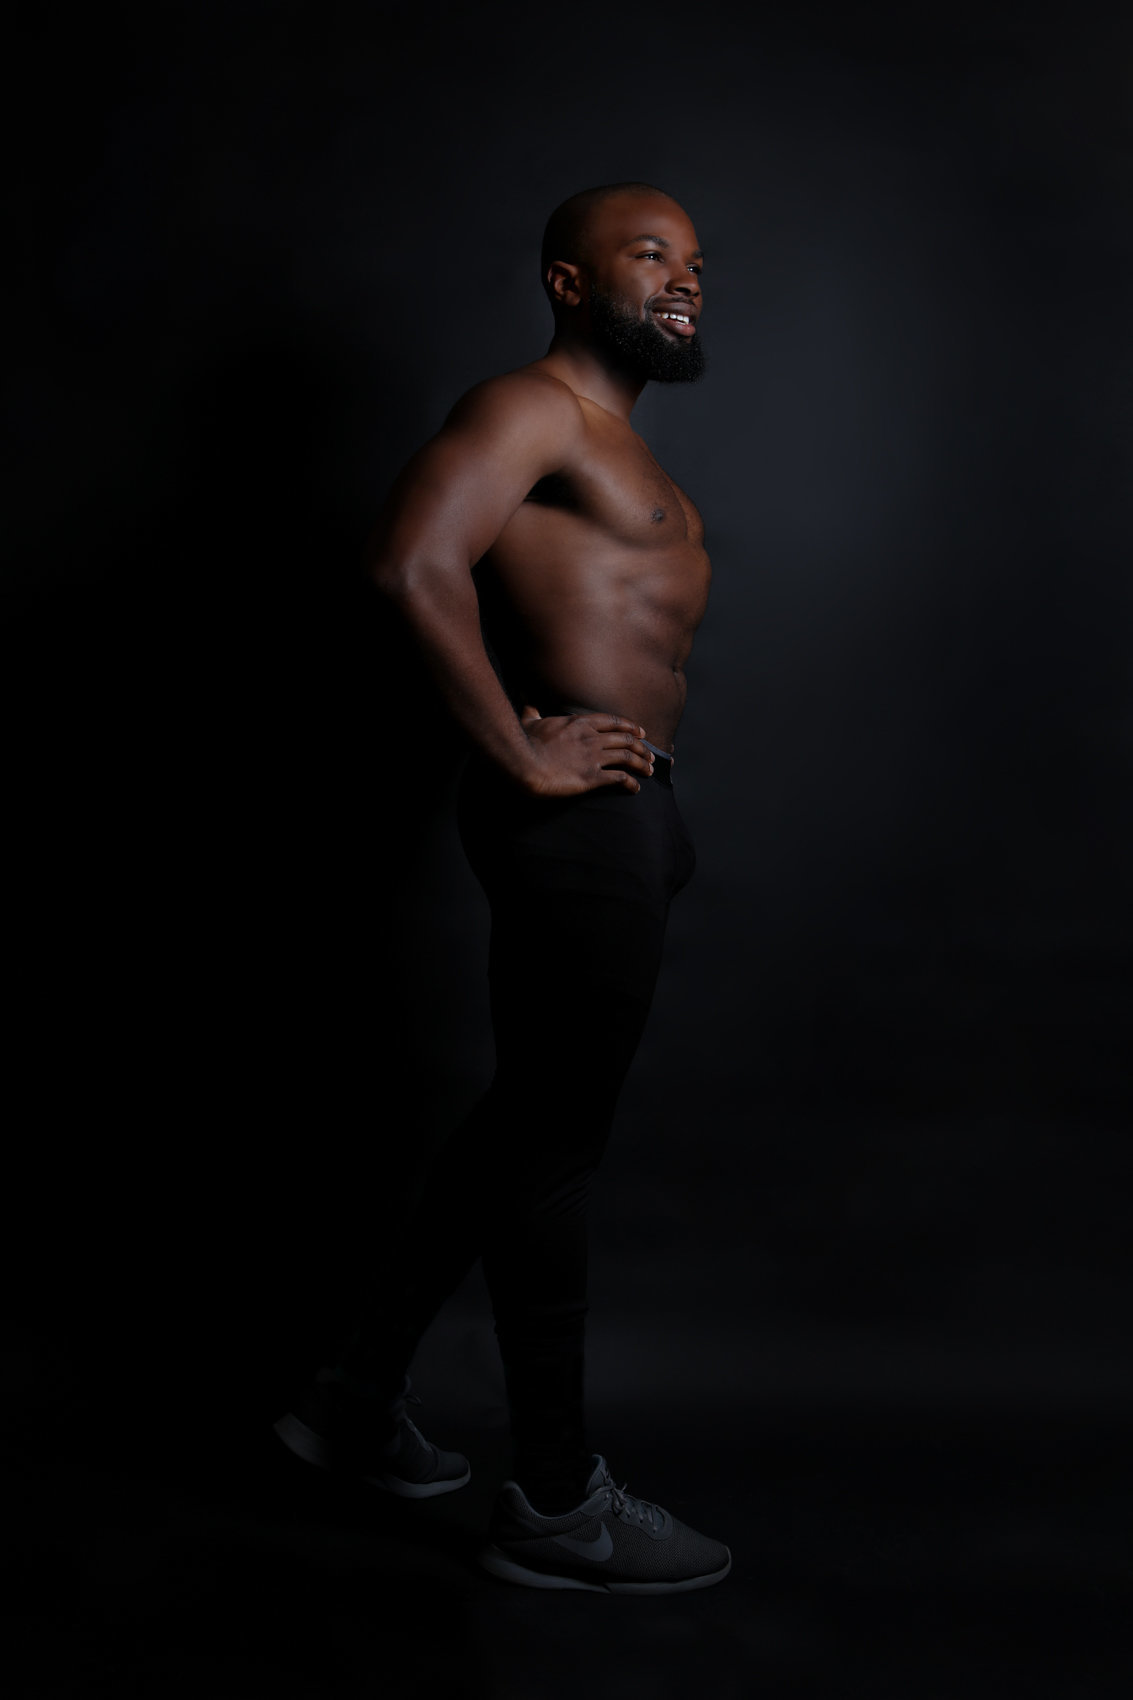 In-Studio Fitness Photoshoot with a Dramatic Black Backdrop at Lisa DeNeffe Photography